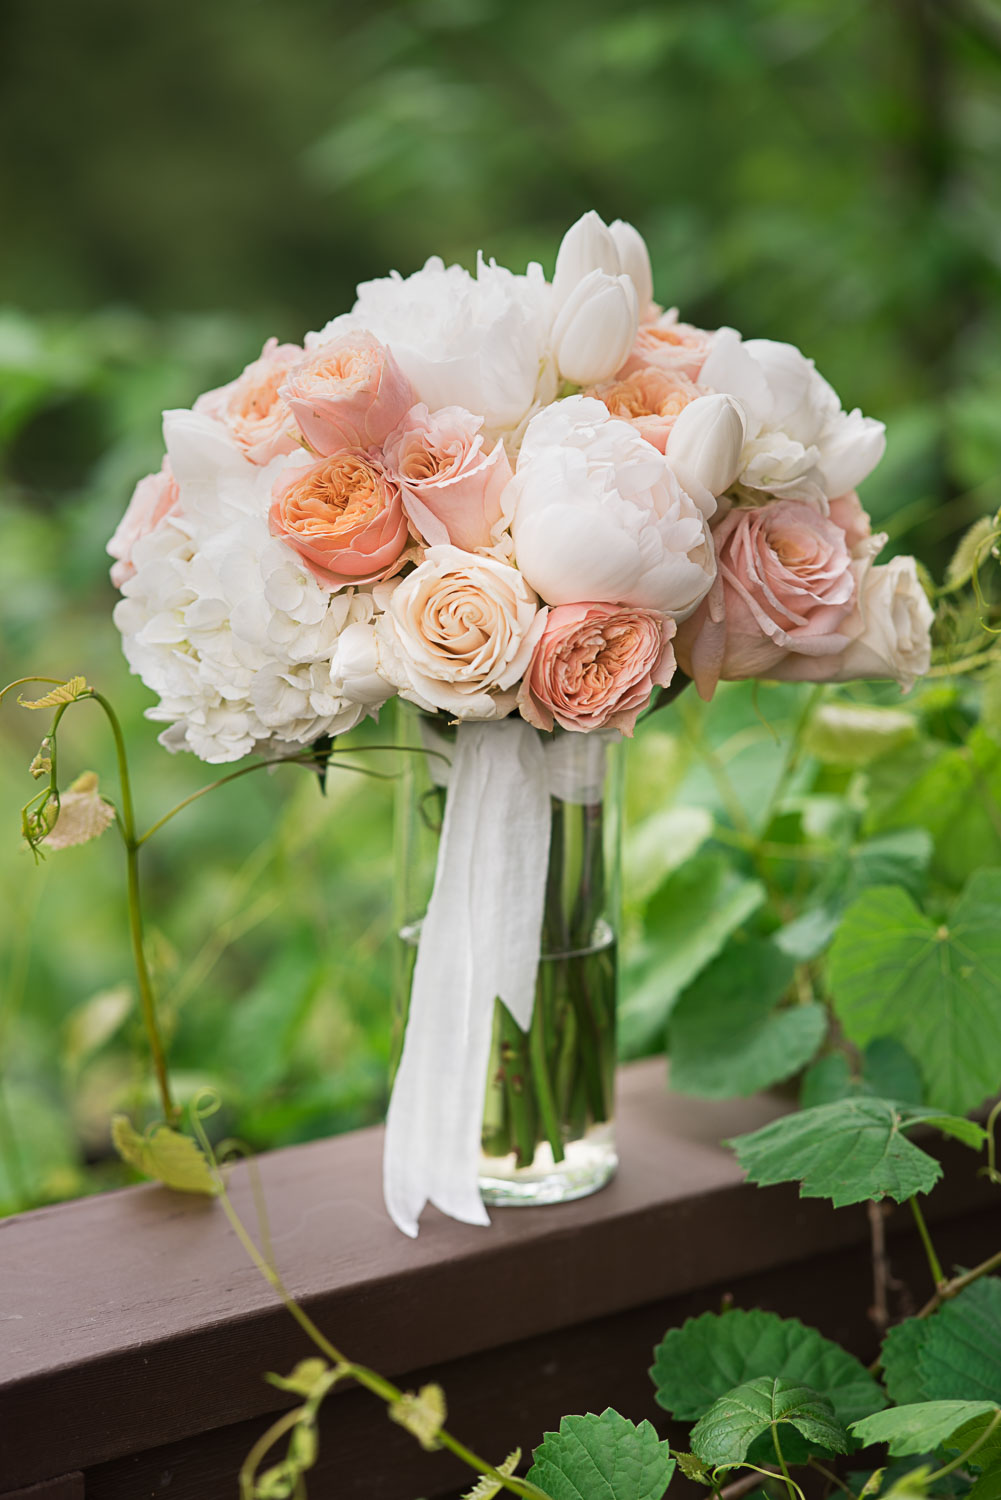 33 Couture Wedding Flowers Floral Boquet.jpg